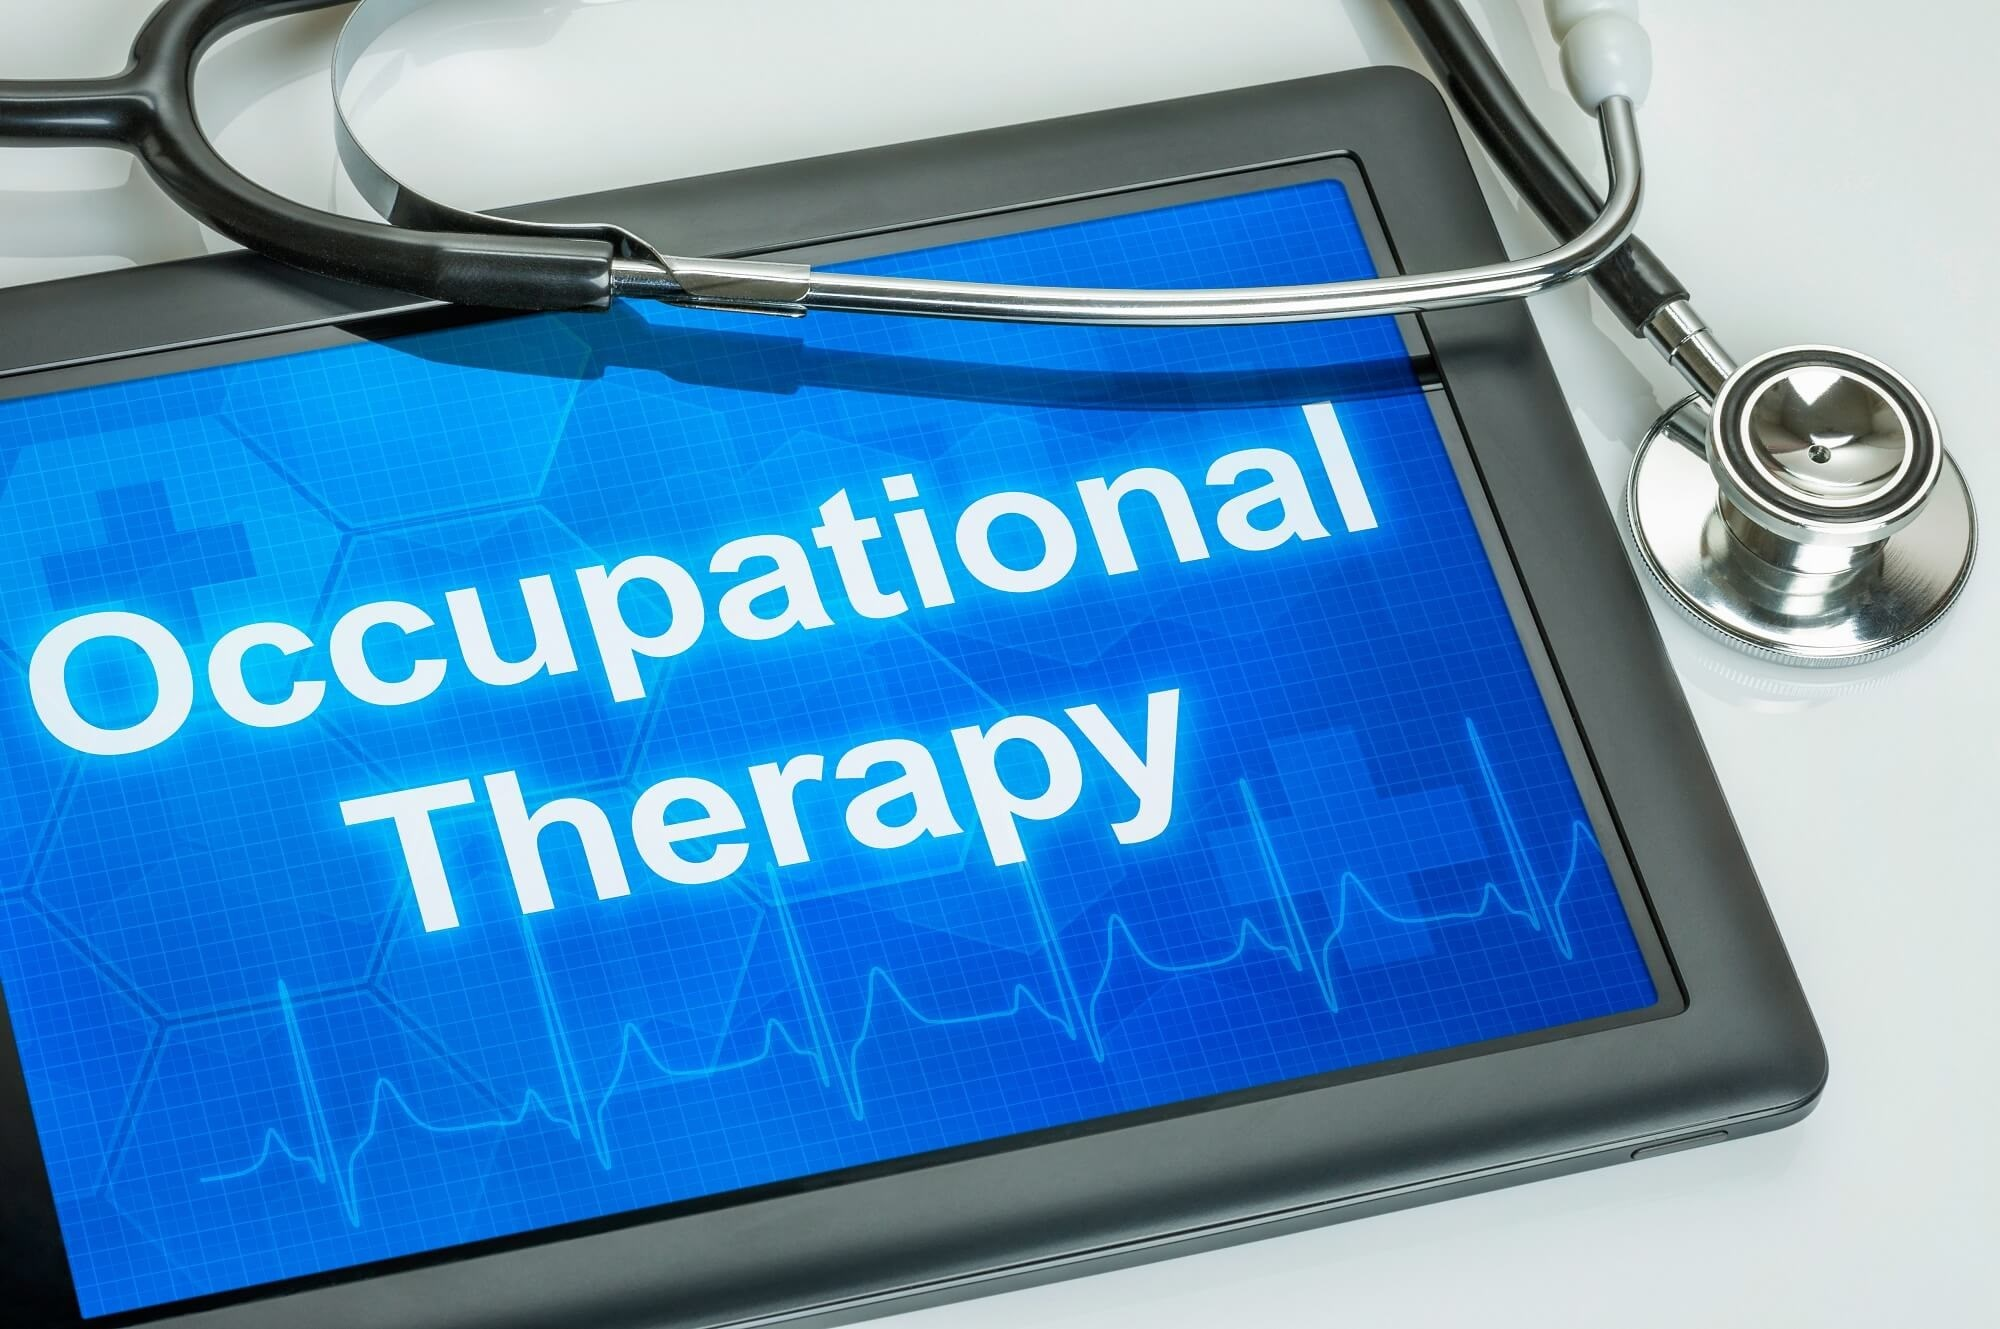 Patients With Schizophrenia May Benefit From Occupational Therapy